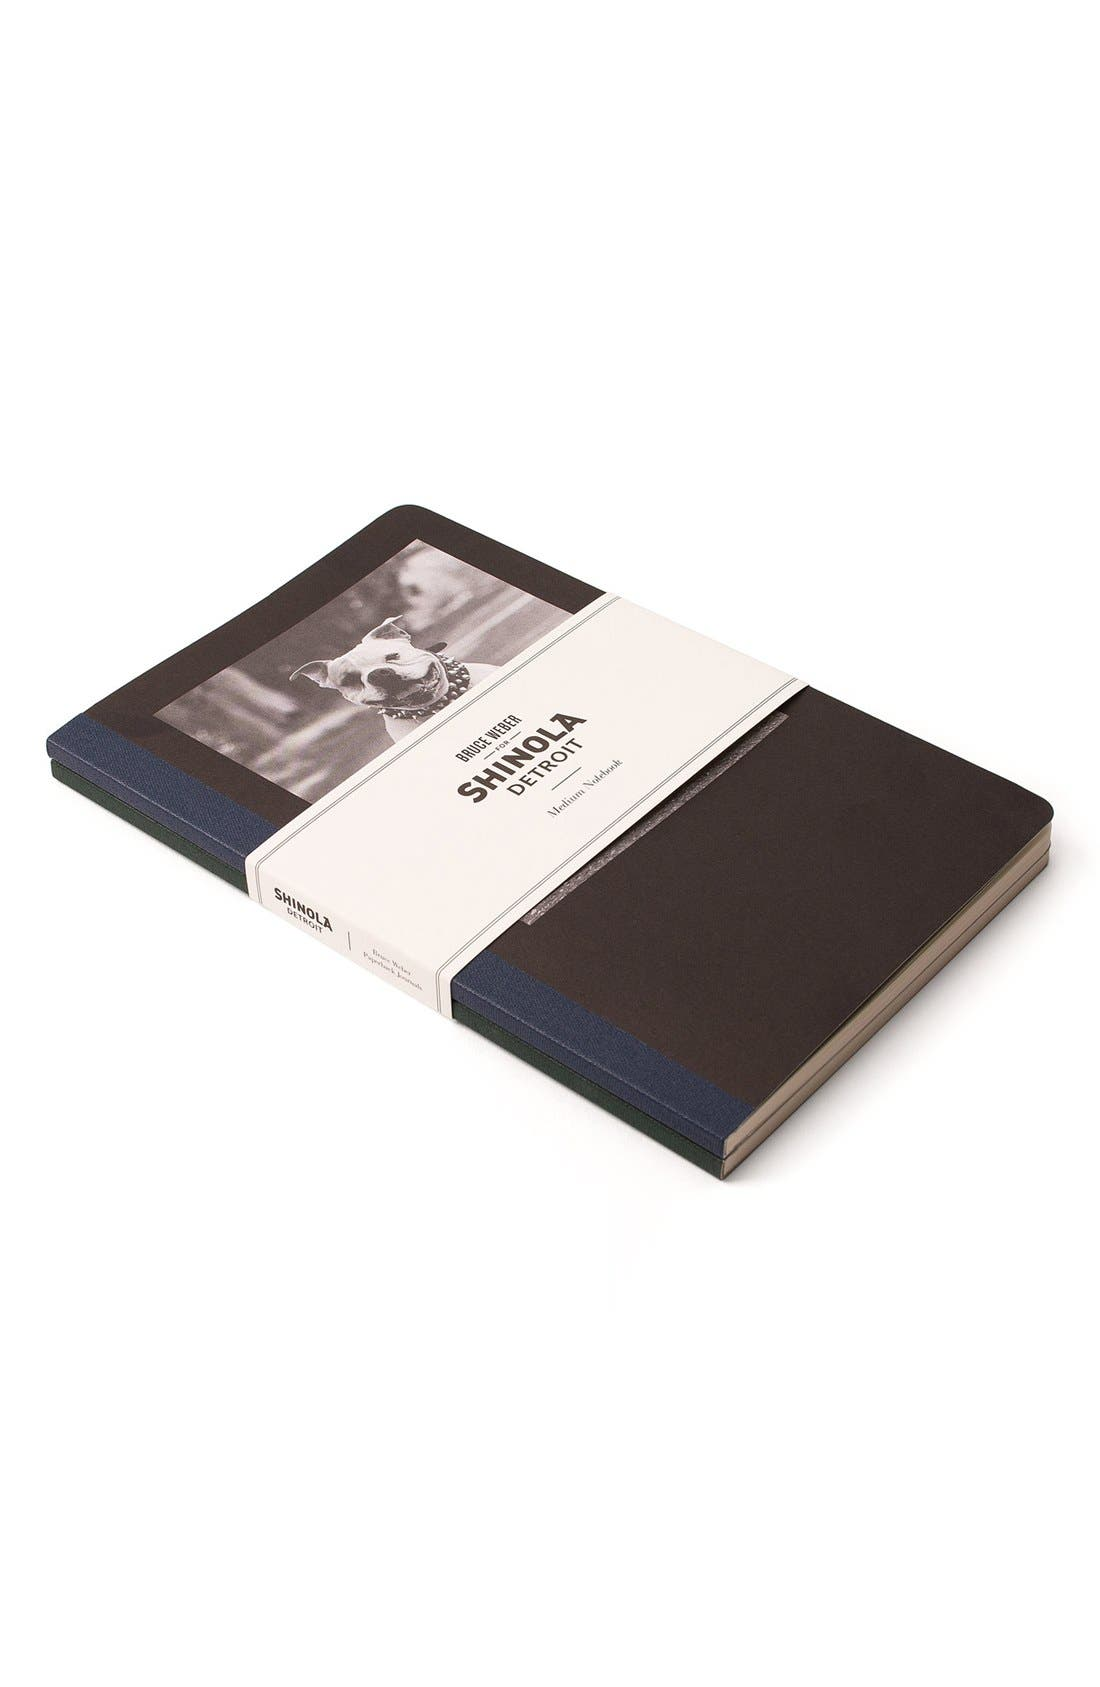 Alternate Image 1 Selected - Shinola 'All American' Journal (2-Pack)